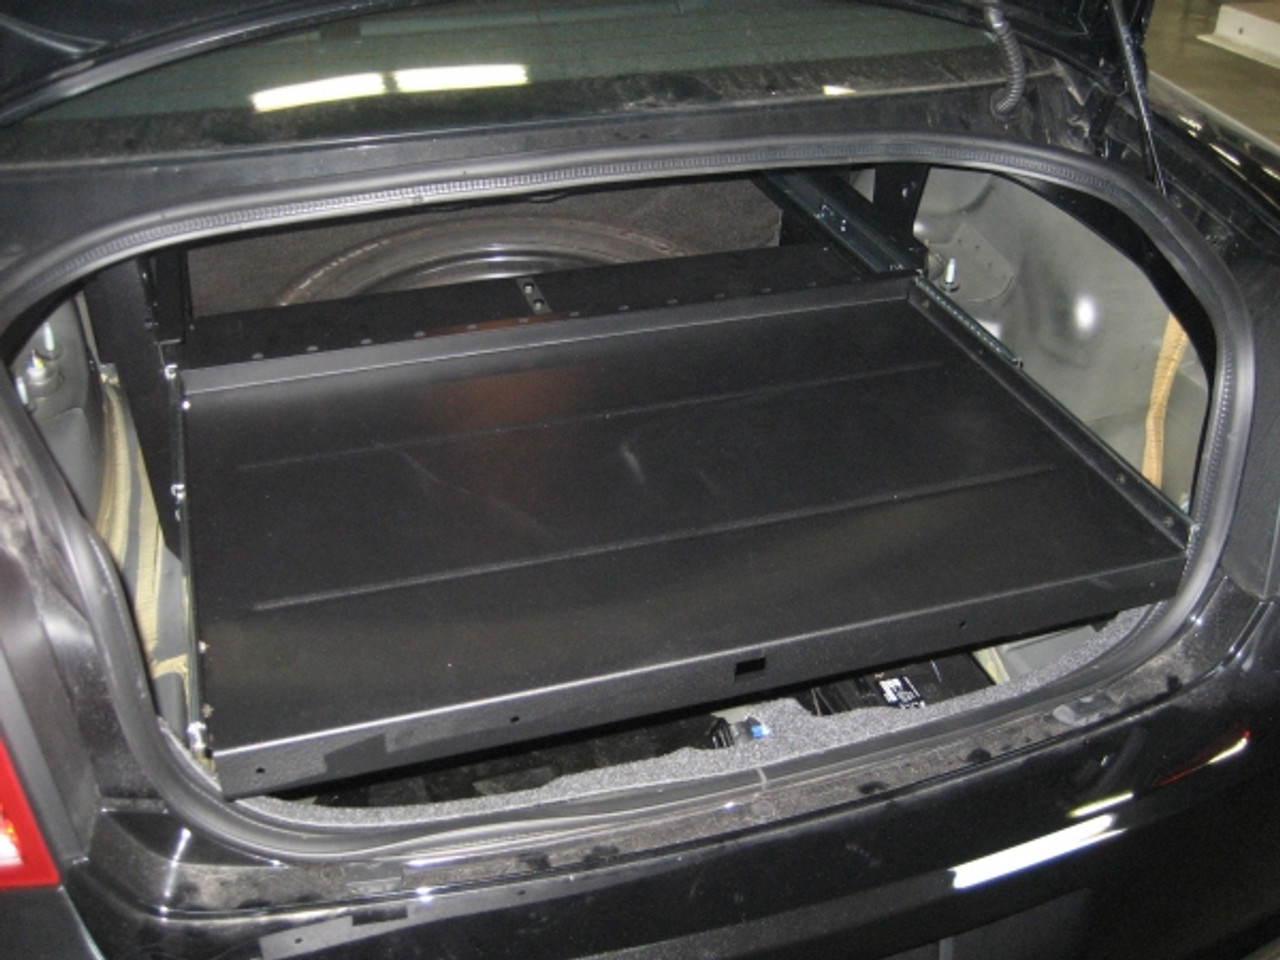 Charger Double Layered Trunk Tray Organizer by Havis 2006-2010